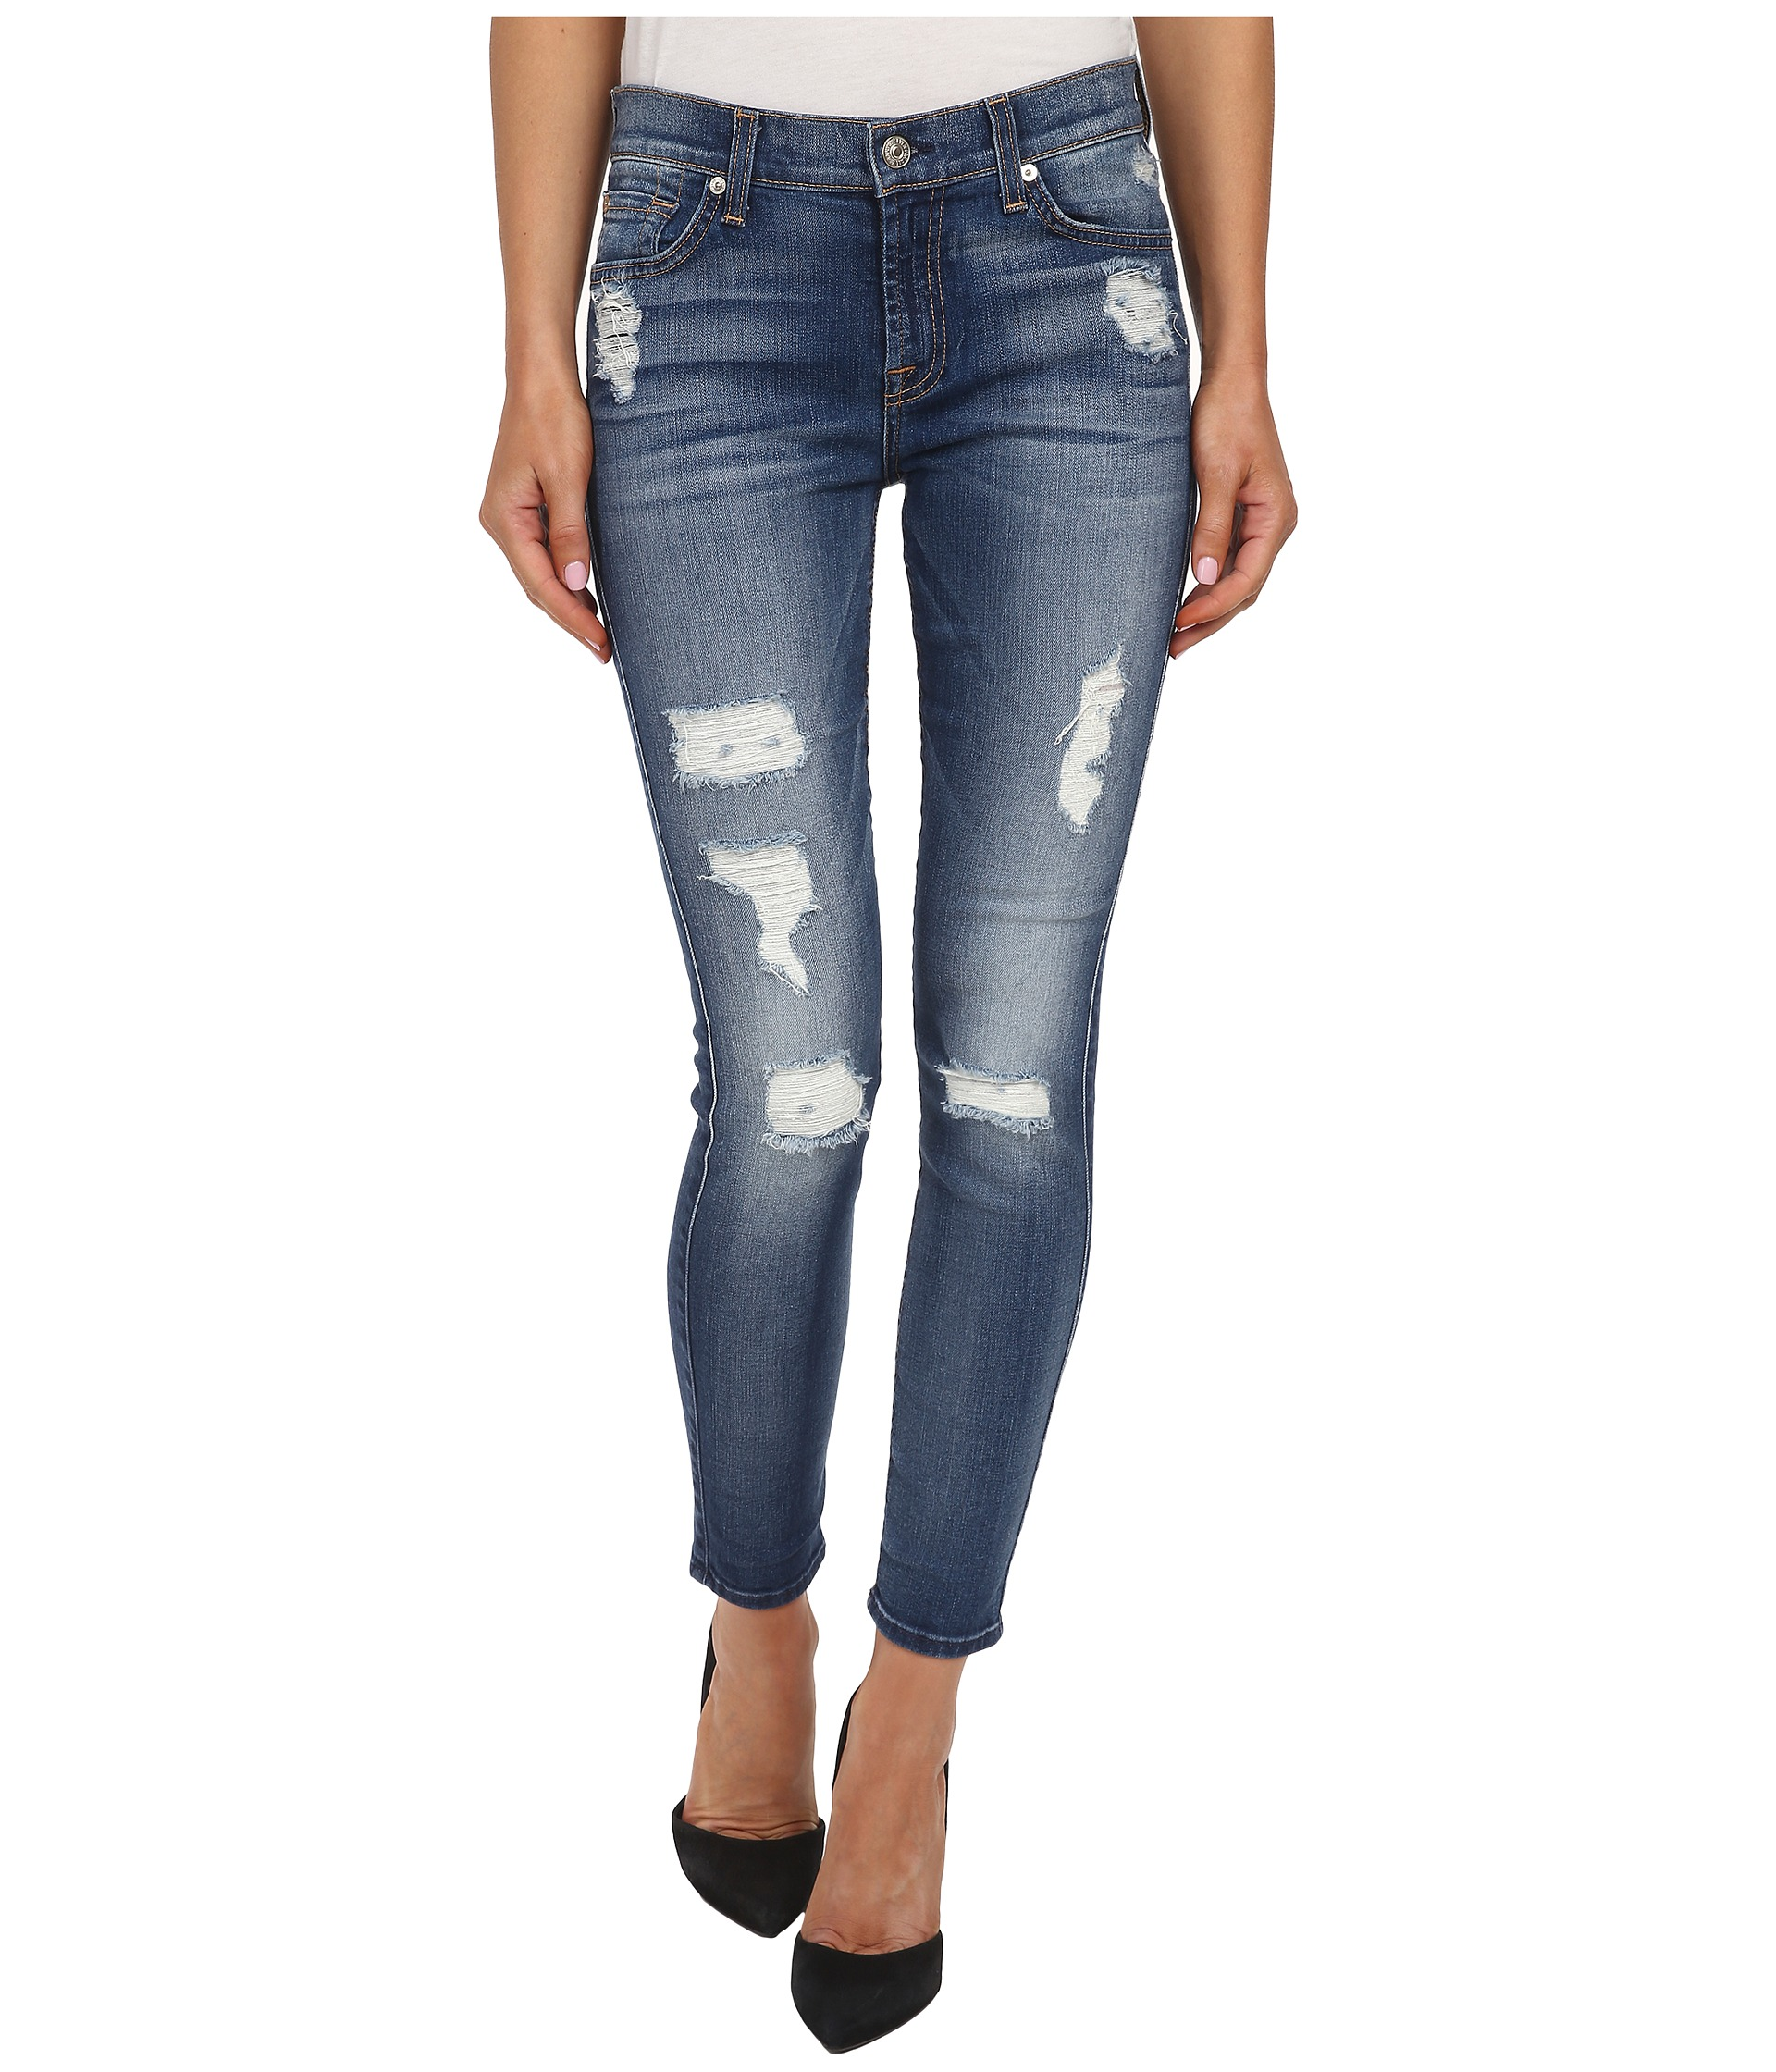 7 For All Mankind, Clothing, Women | Shipped Free at Zappos